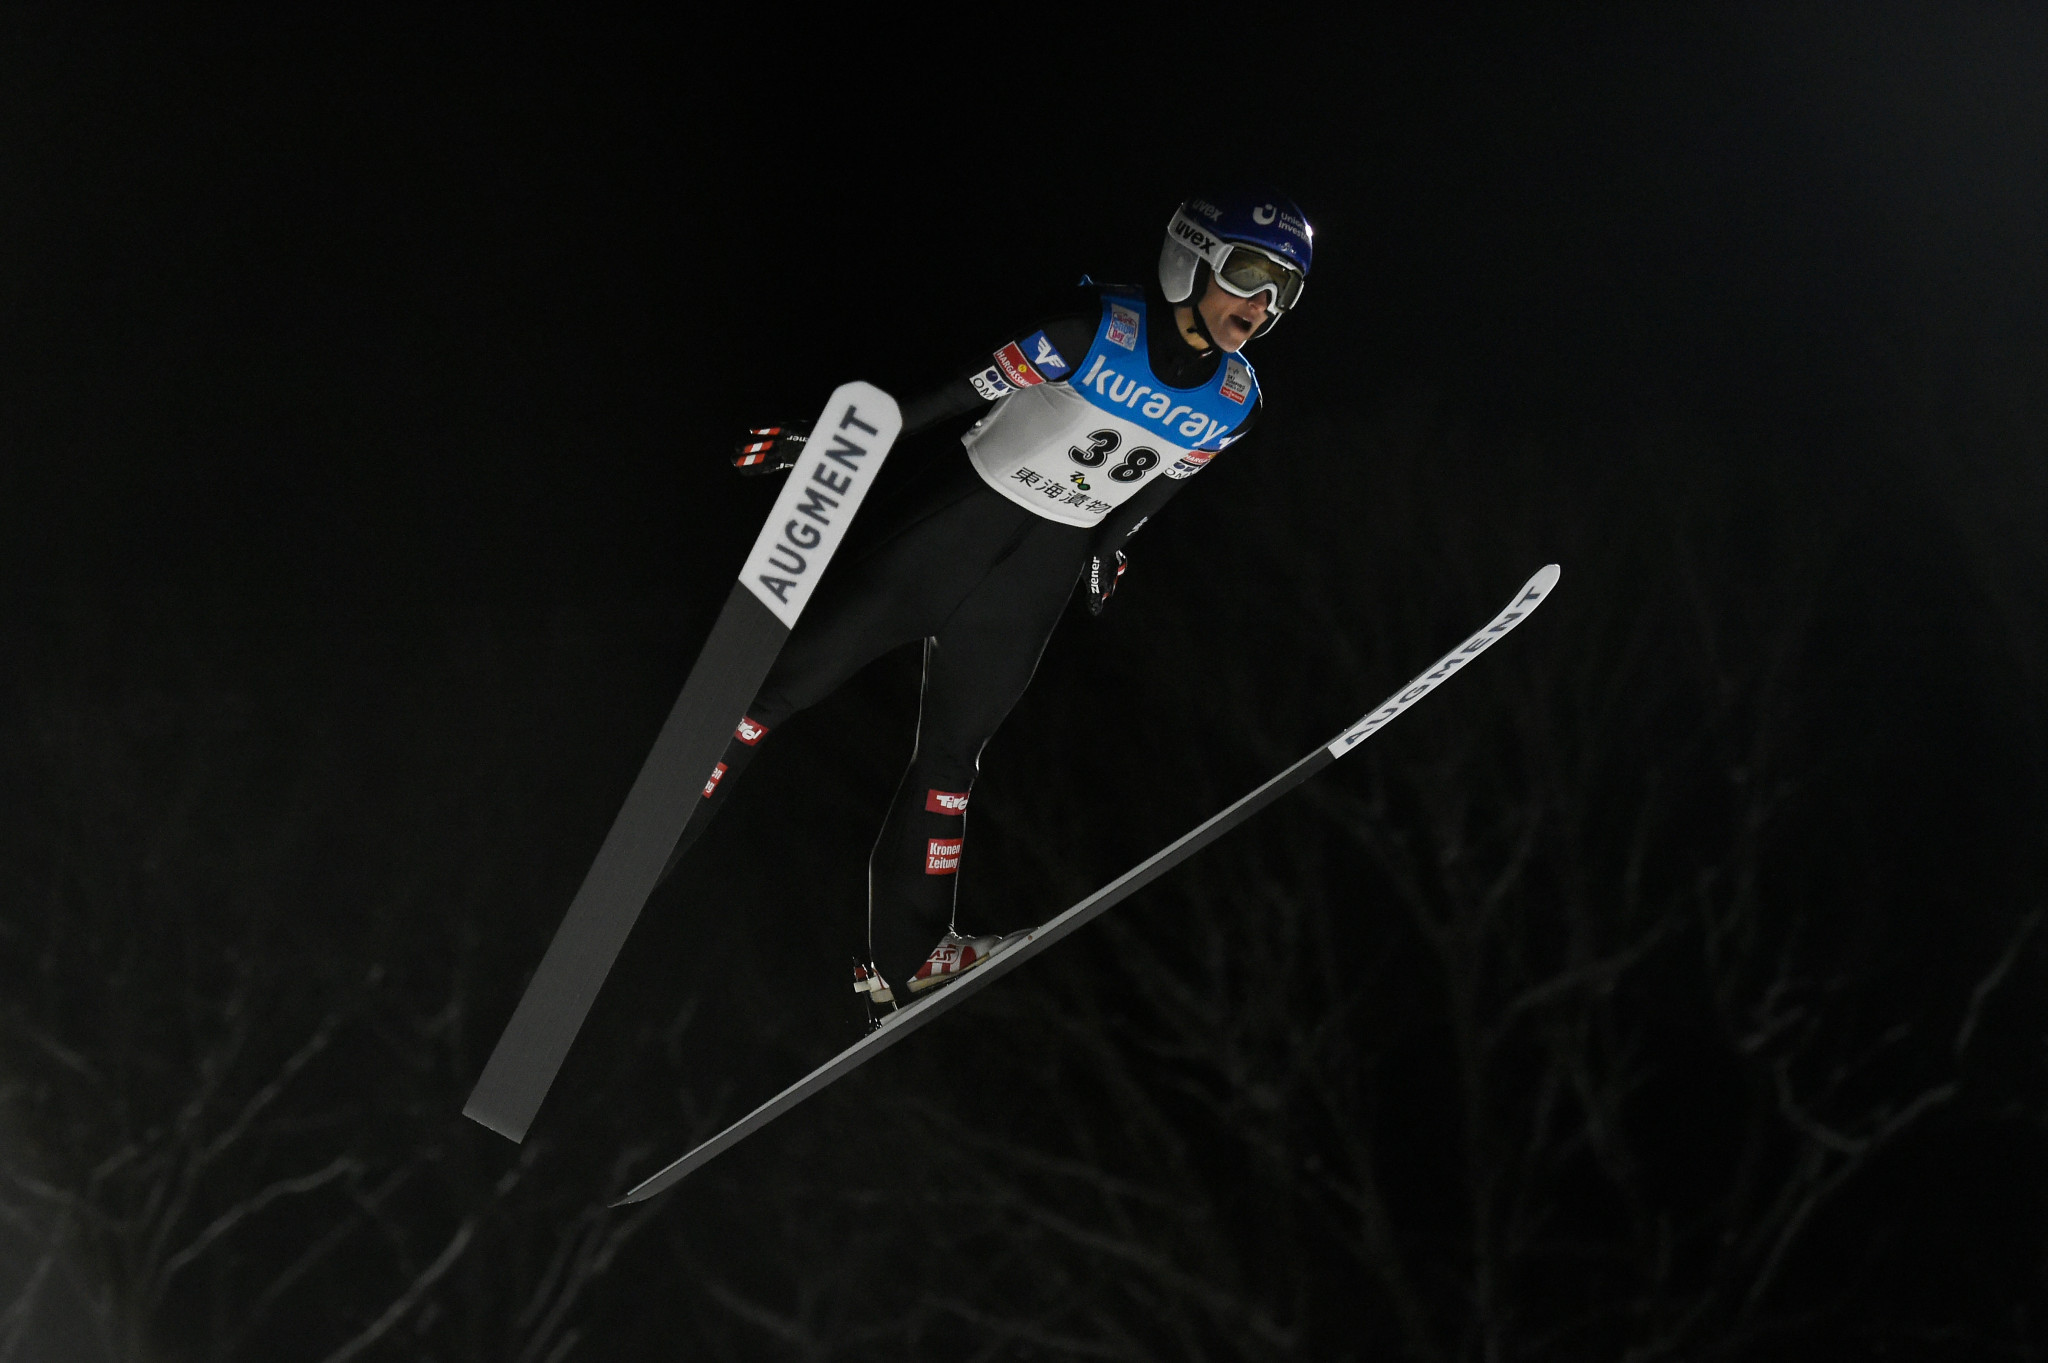 Austria's Eva Pinkelnig is in the form of her life on the FIS Ski Jumping World Cup tour ©Getty Images